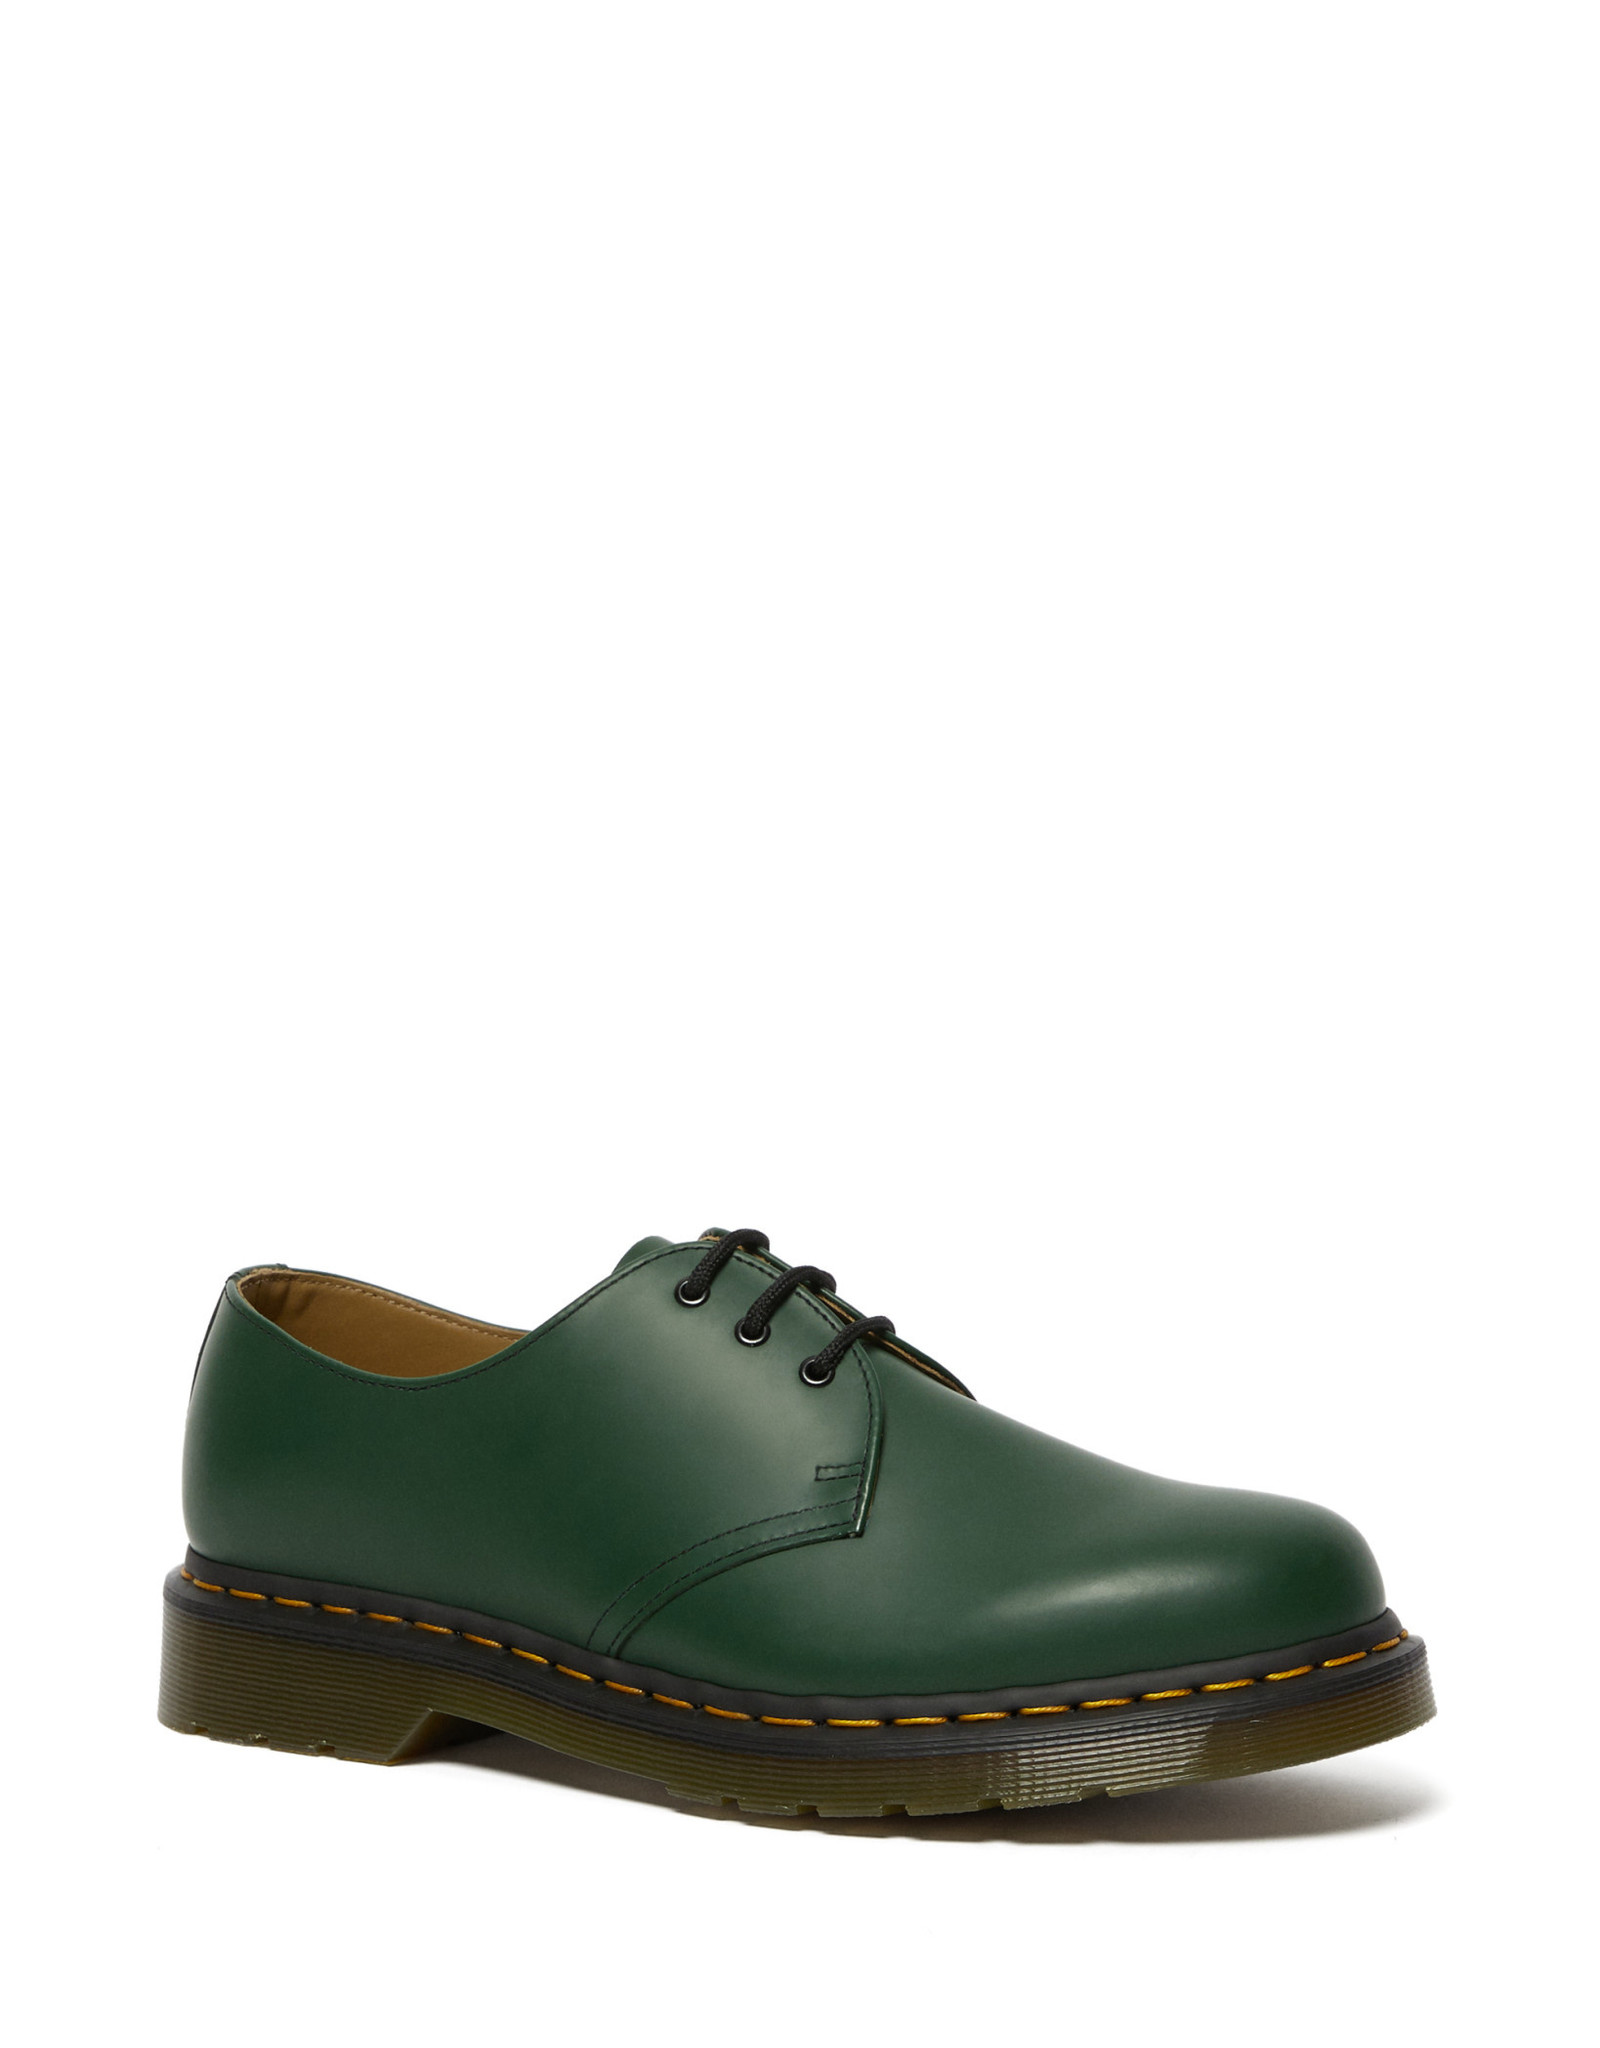 DR. MARTENS 1461 GREEN SMOOTH 301G-R26226300